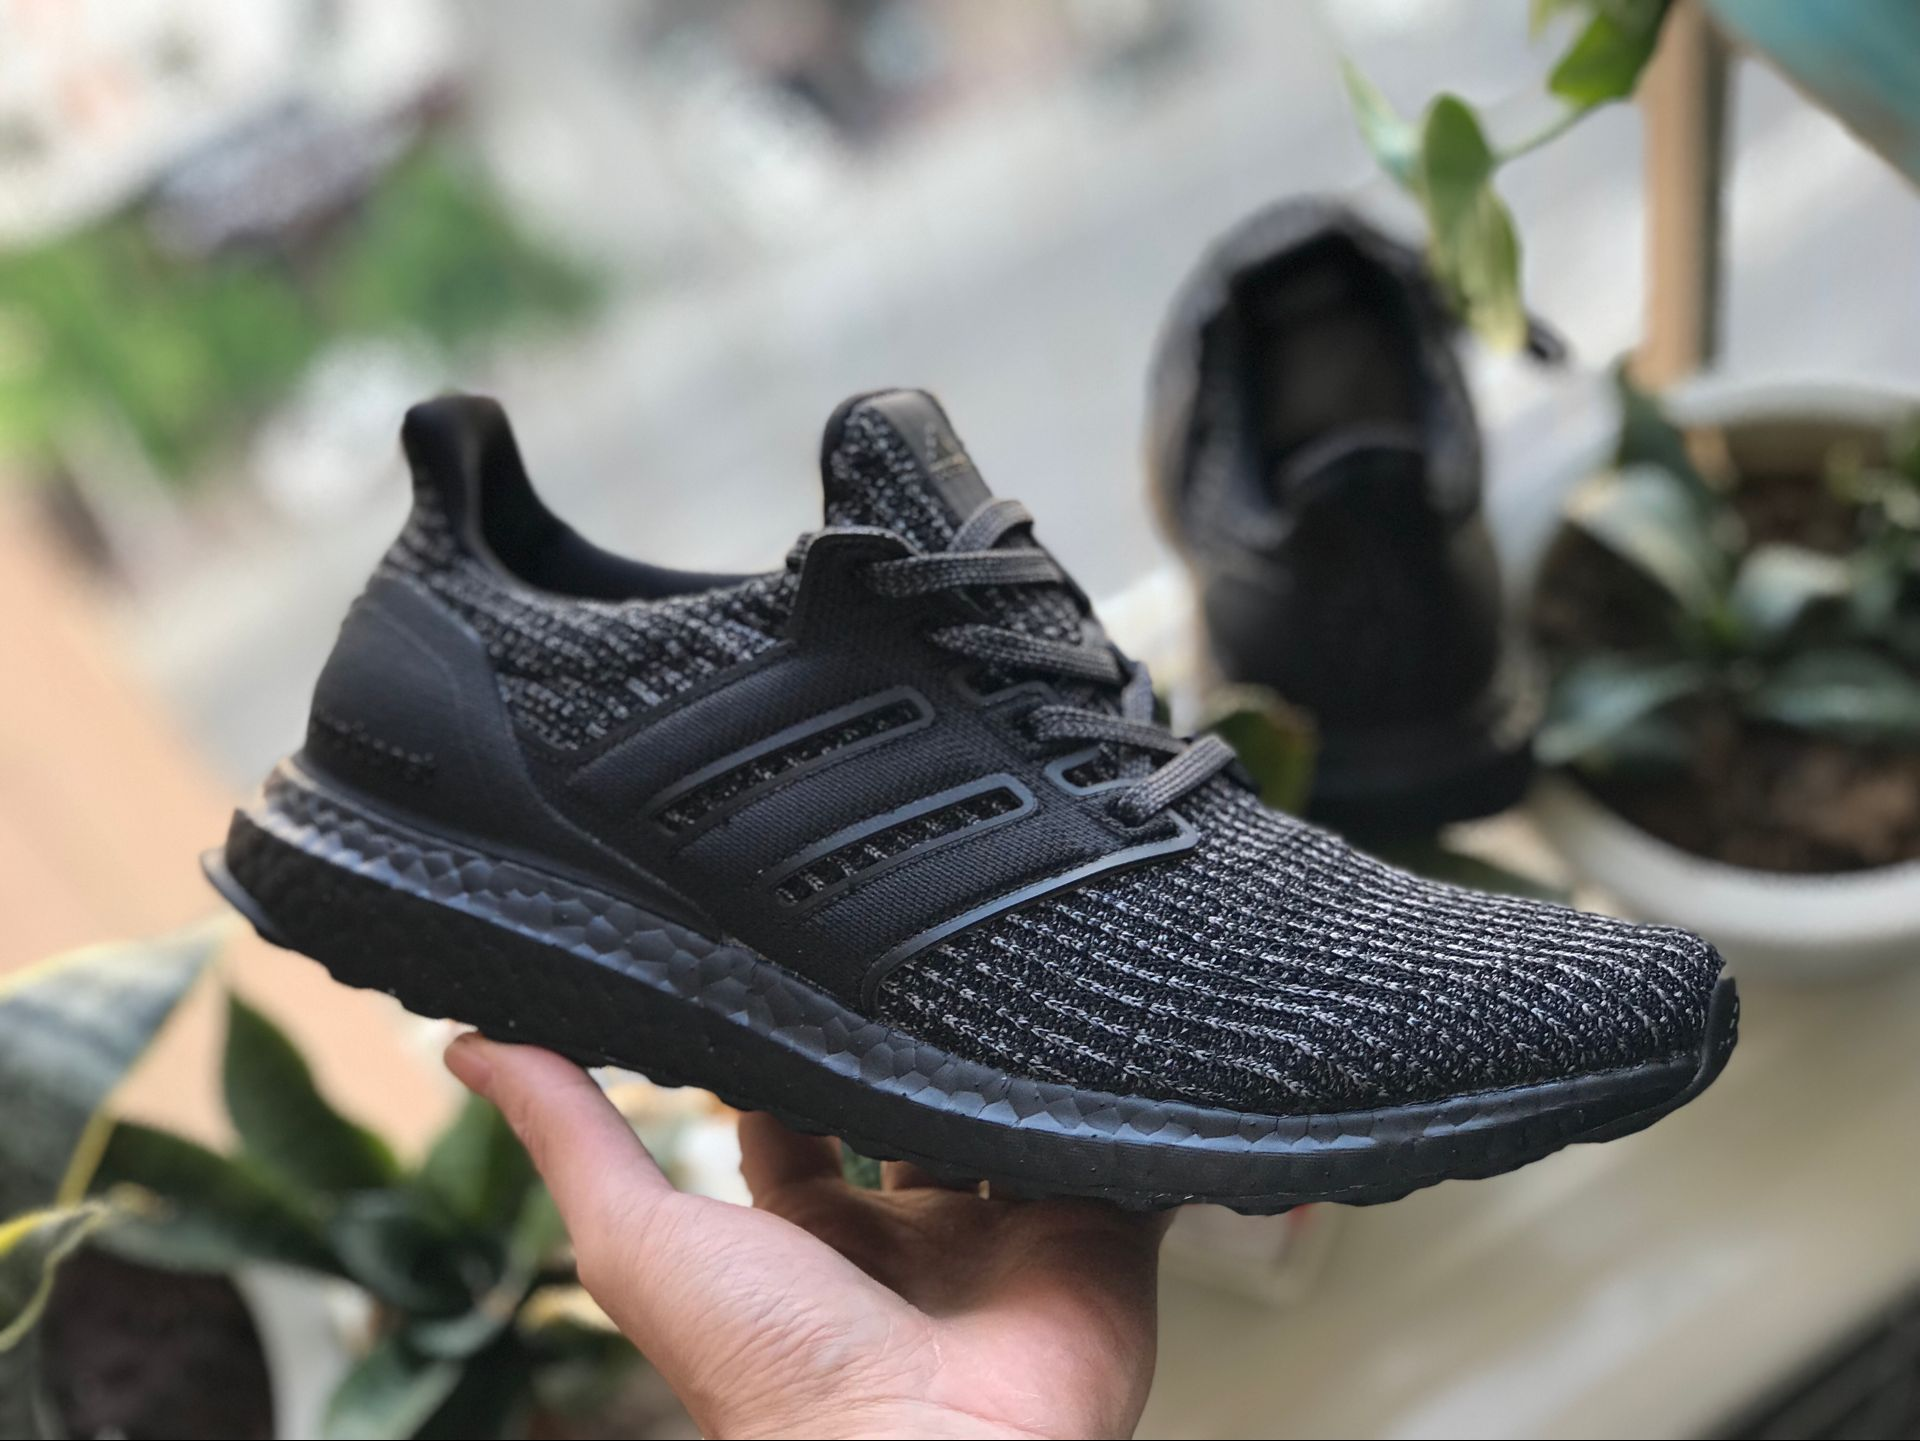 Wholesale HOT 2018 aaaaa quality ARKYN shoes        Ultra Boost ub4.0 shoes 13